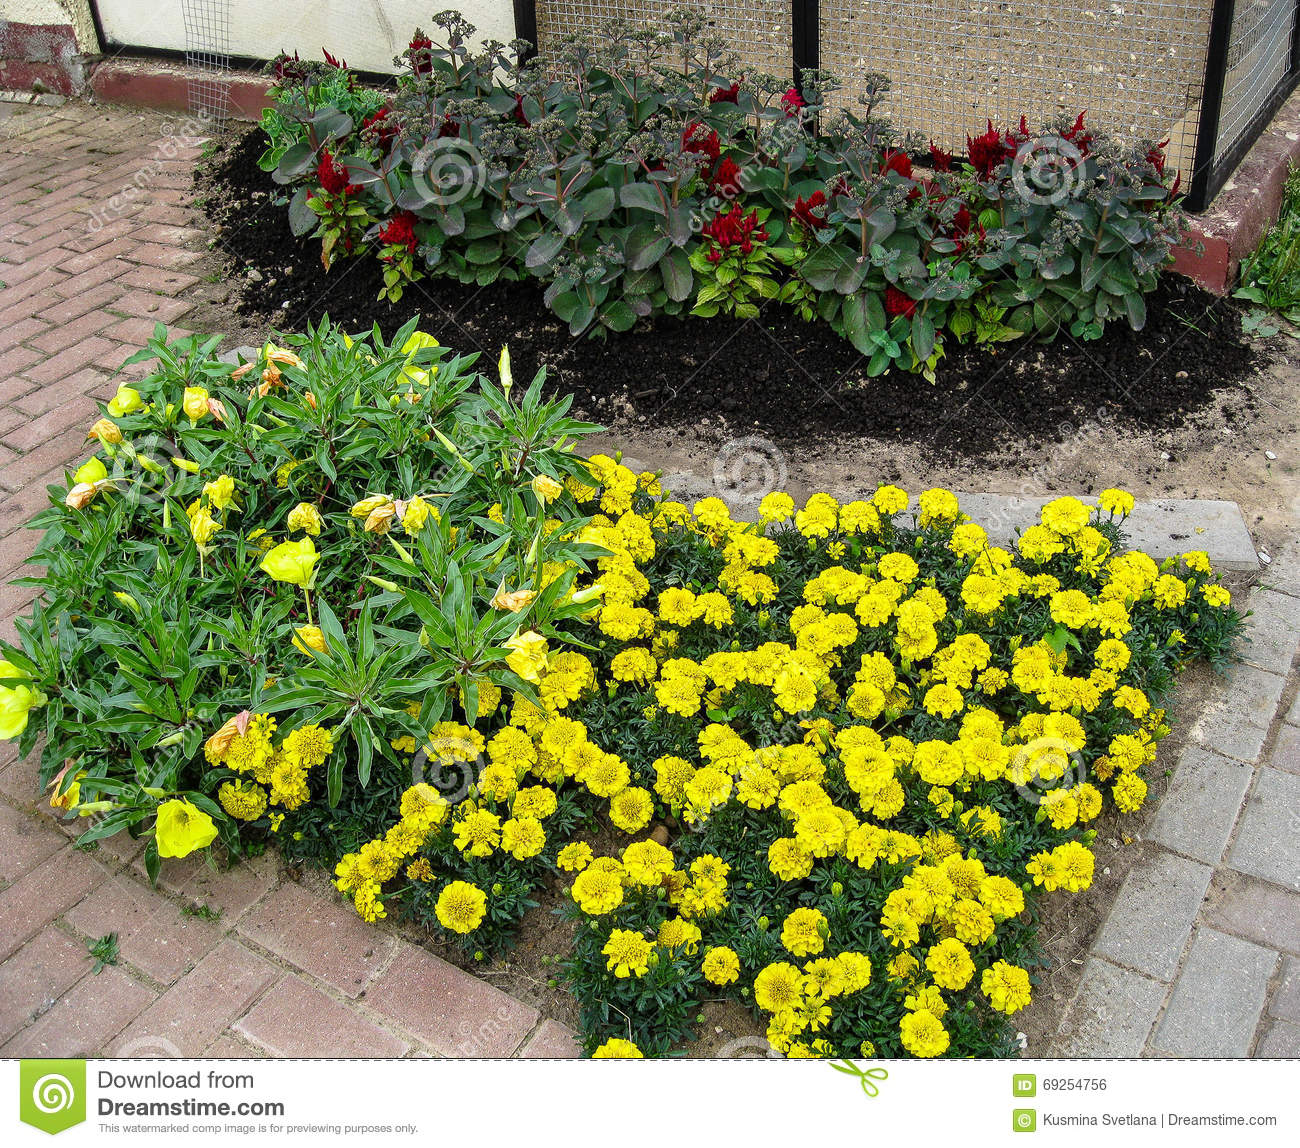 A flower bed in the garden stock photo image 69254756 for Ornamental trees for flower beds